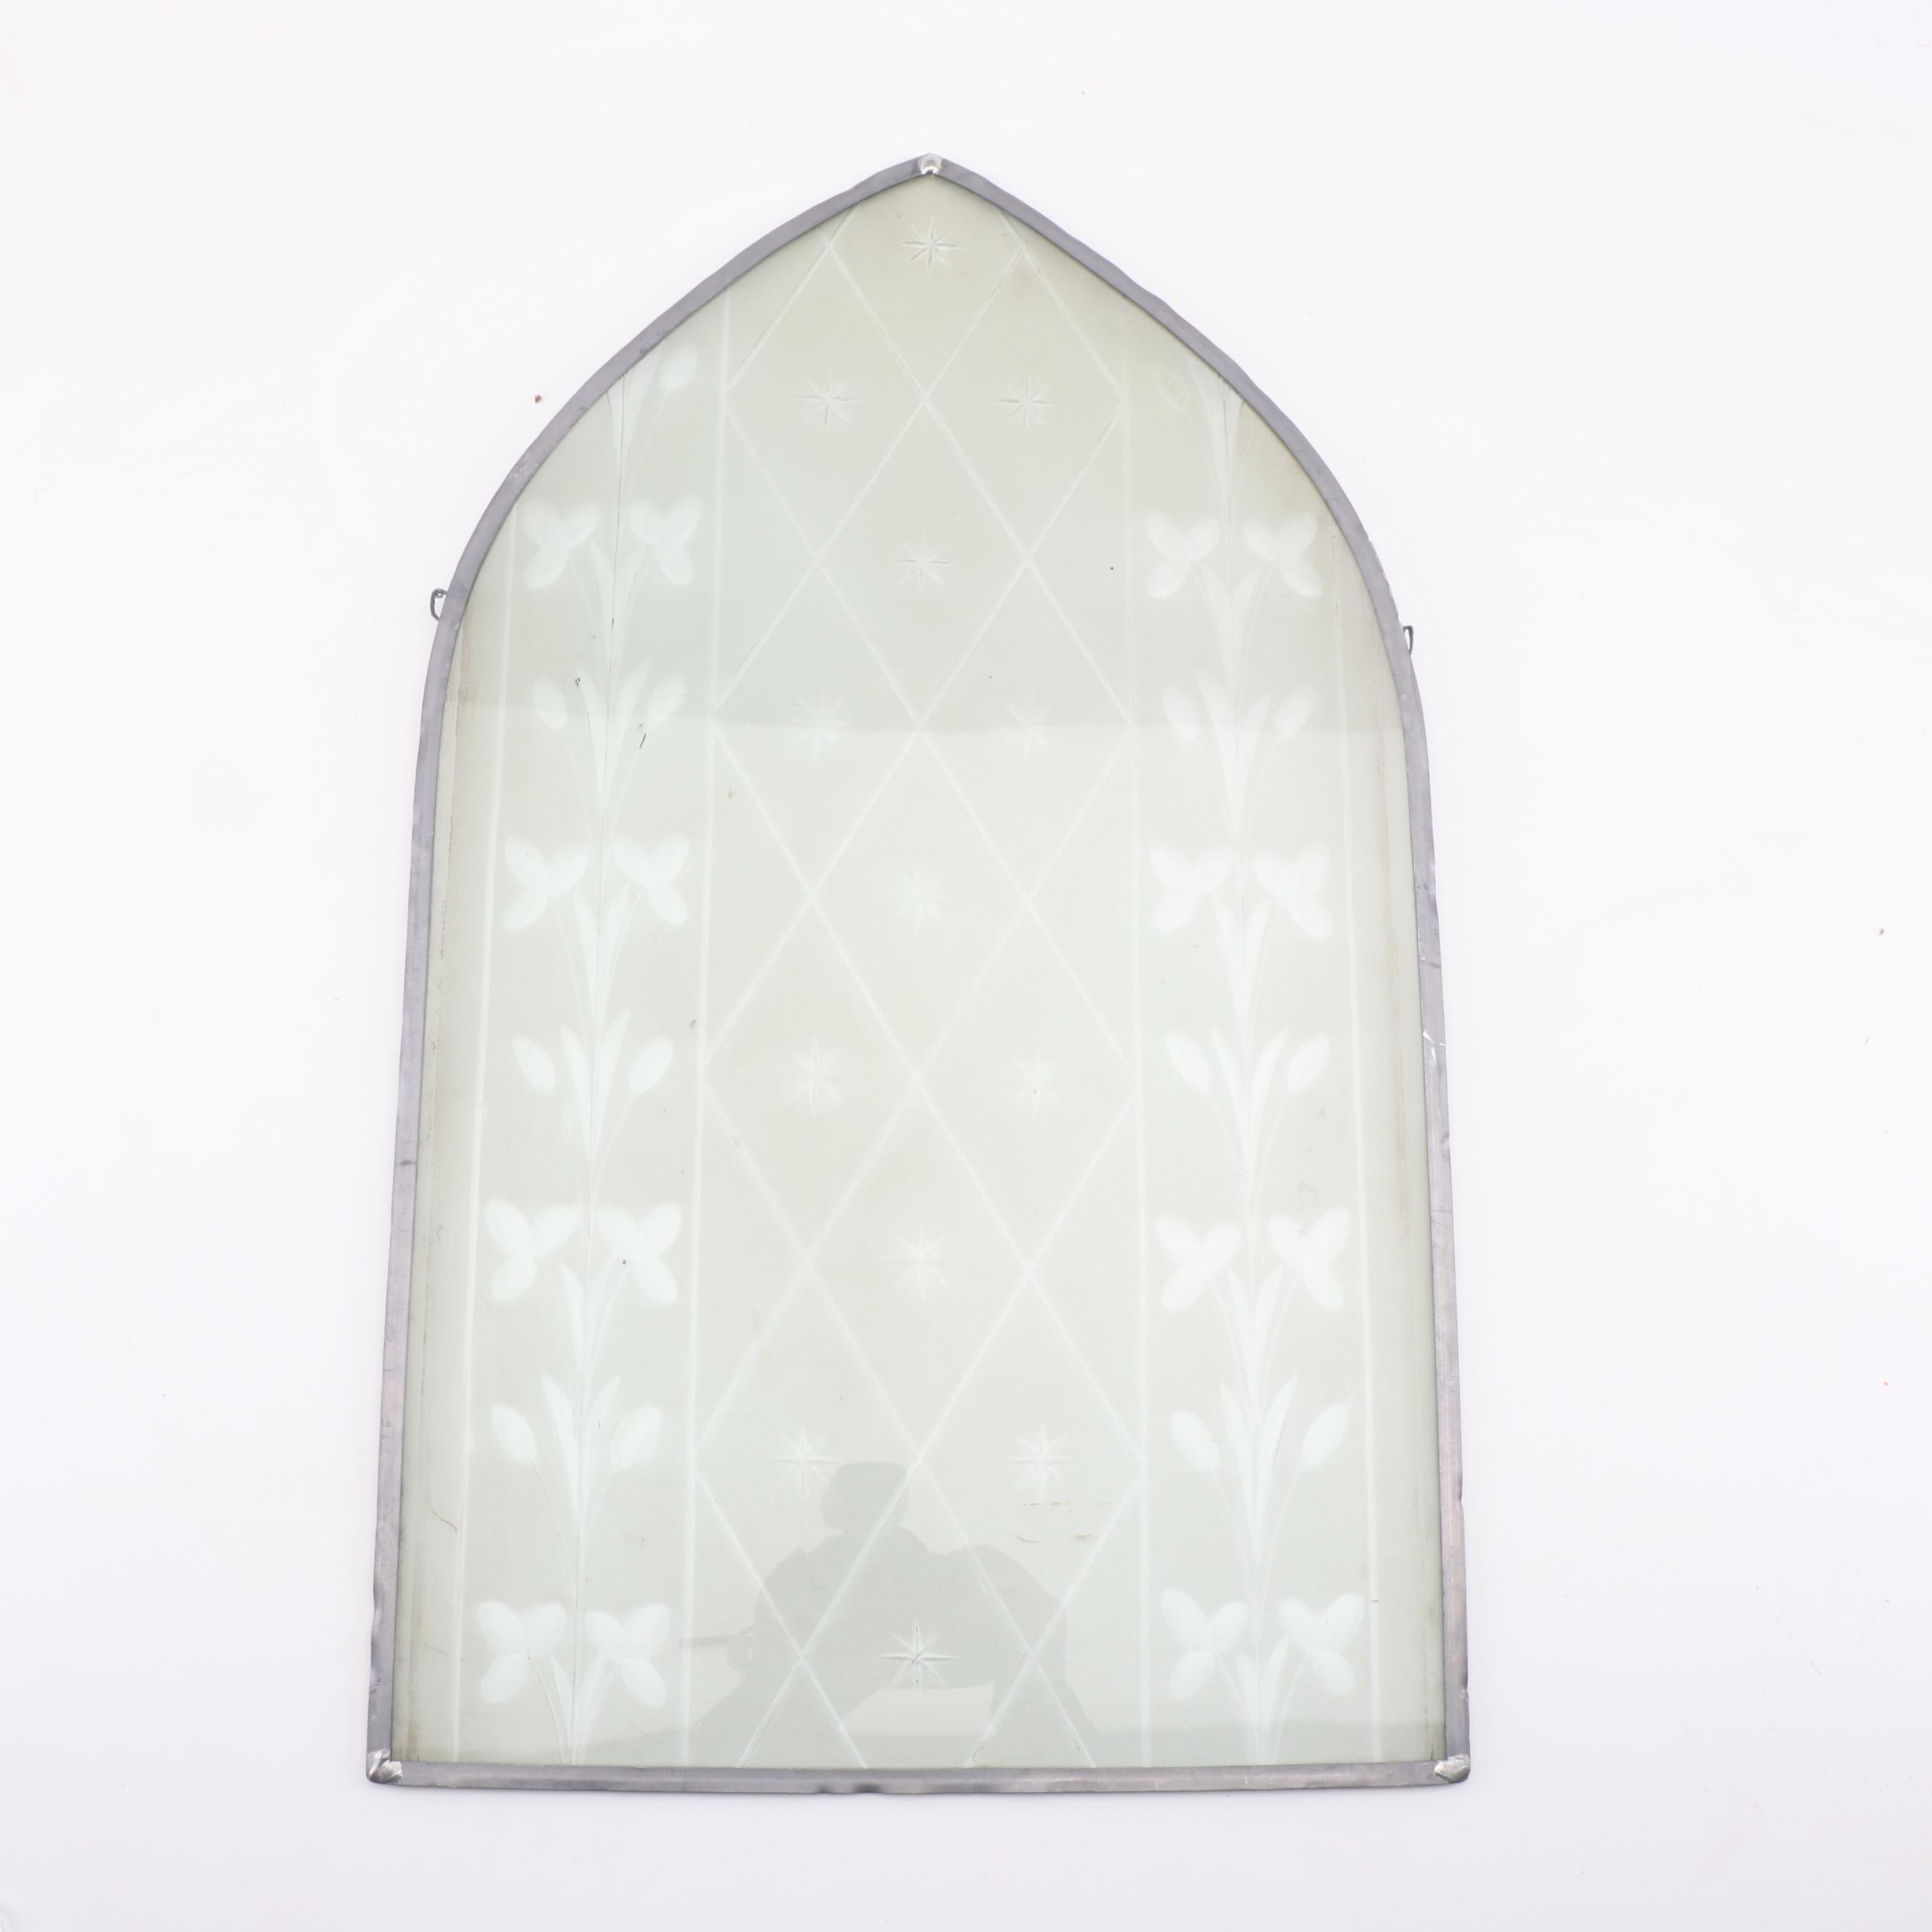 Etched Glass Cathedral Window Hanging Panel